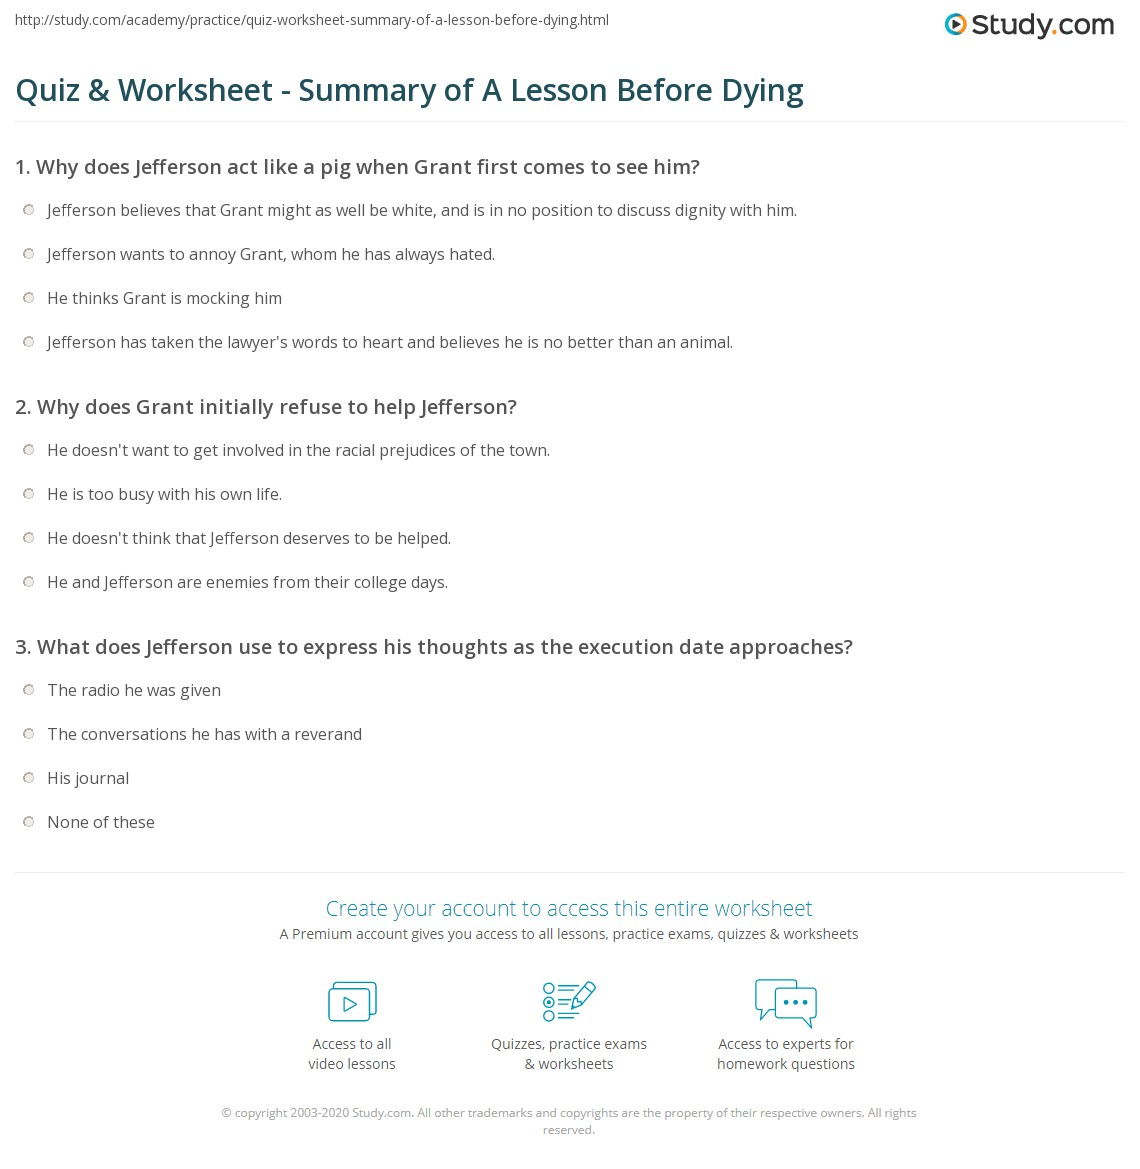 quiz-worksheet-summary-of-a-lesson-befor